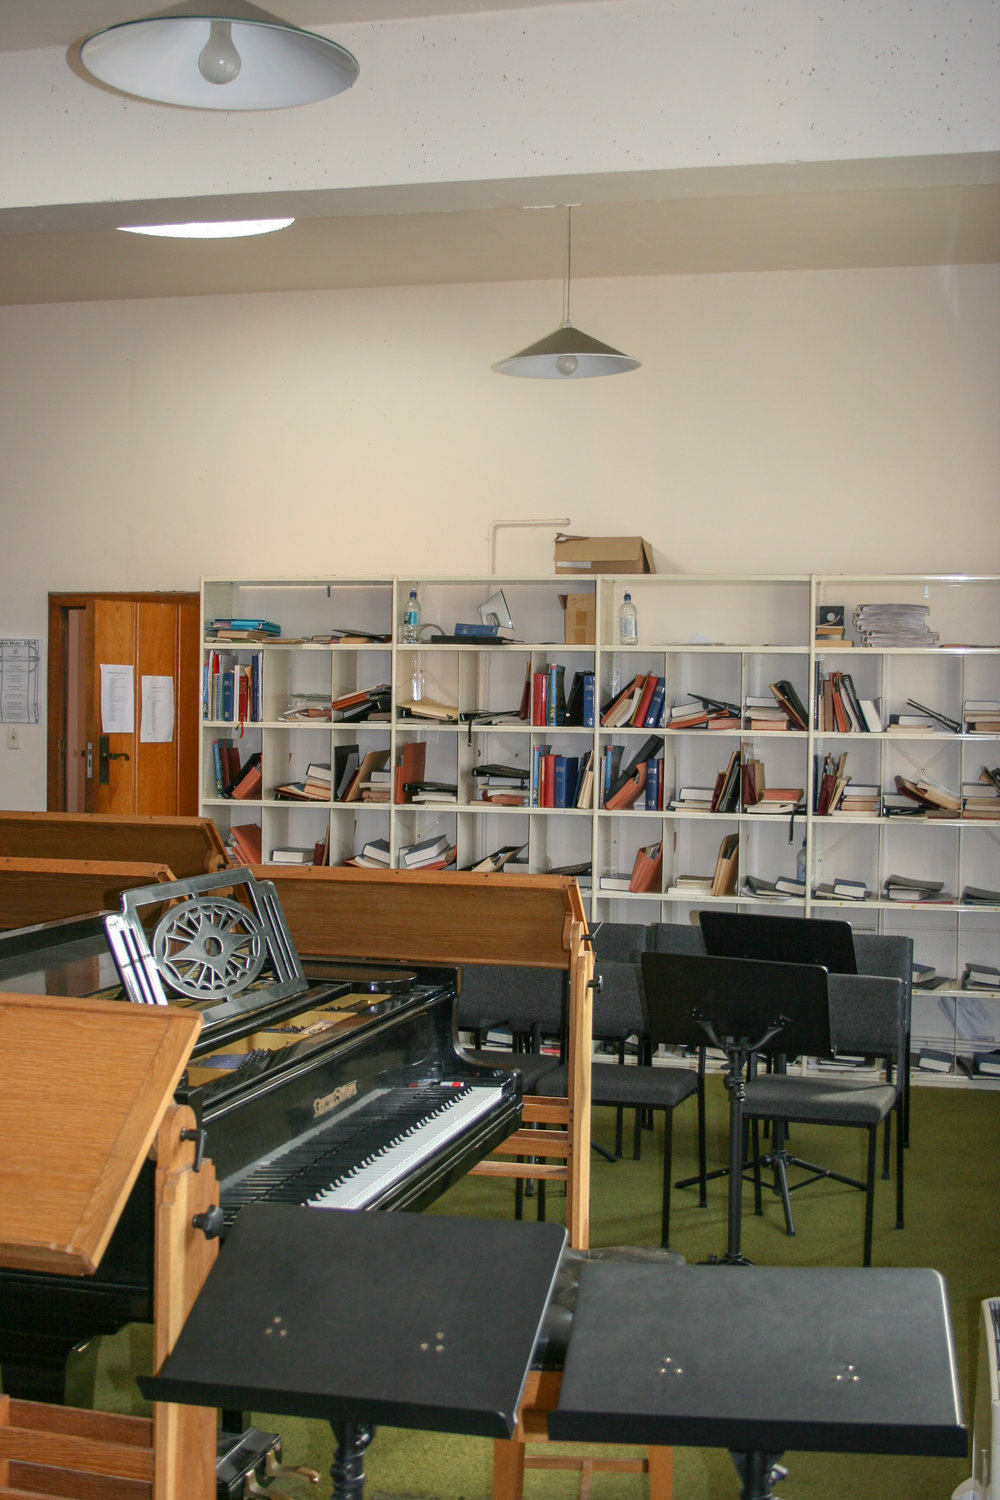 choir-room.jpg